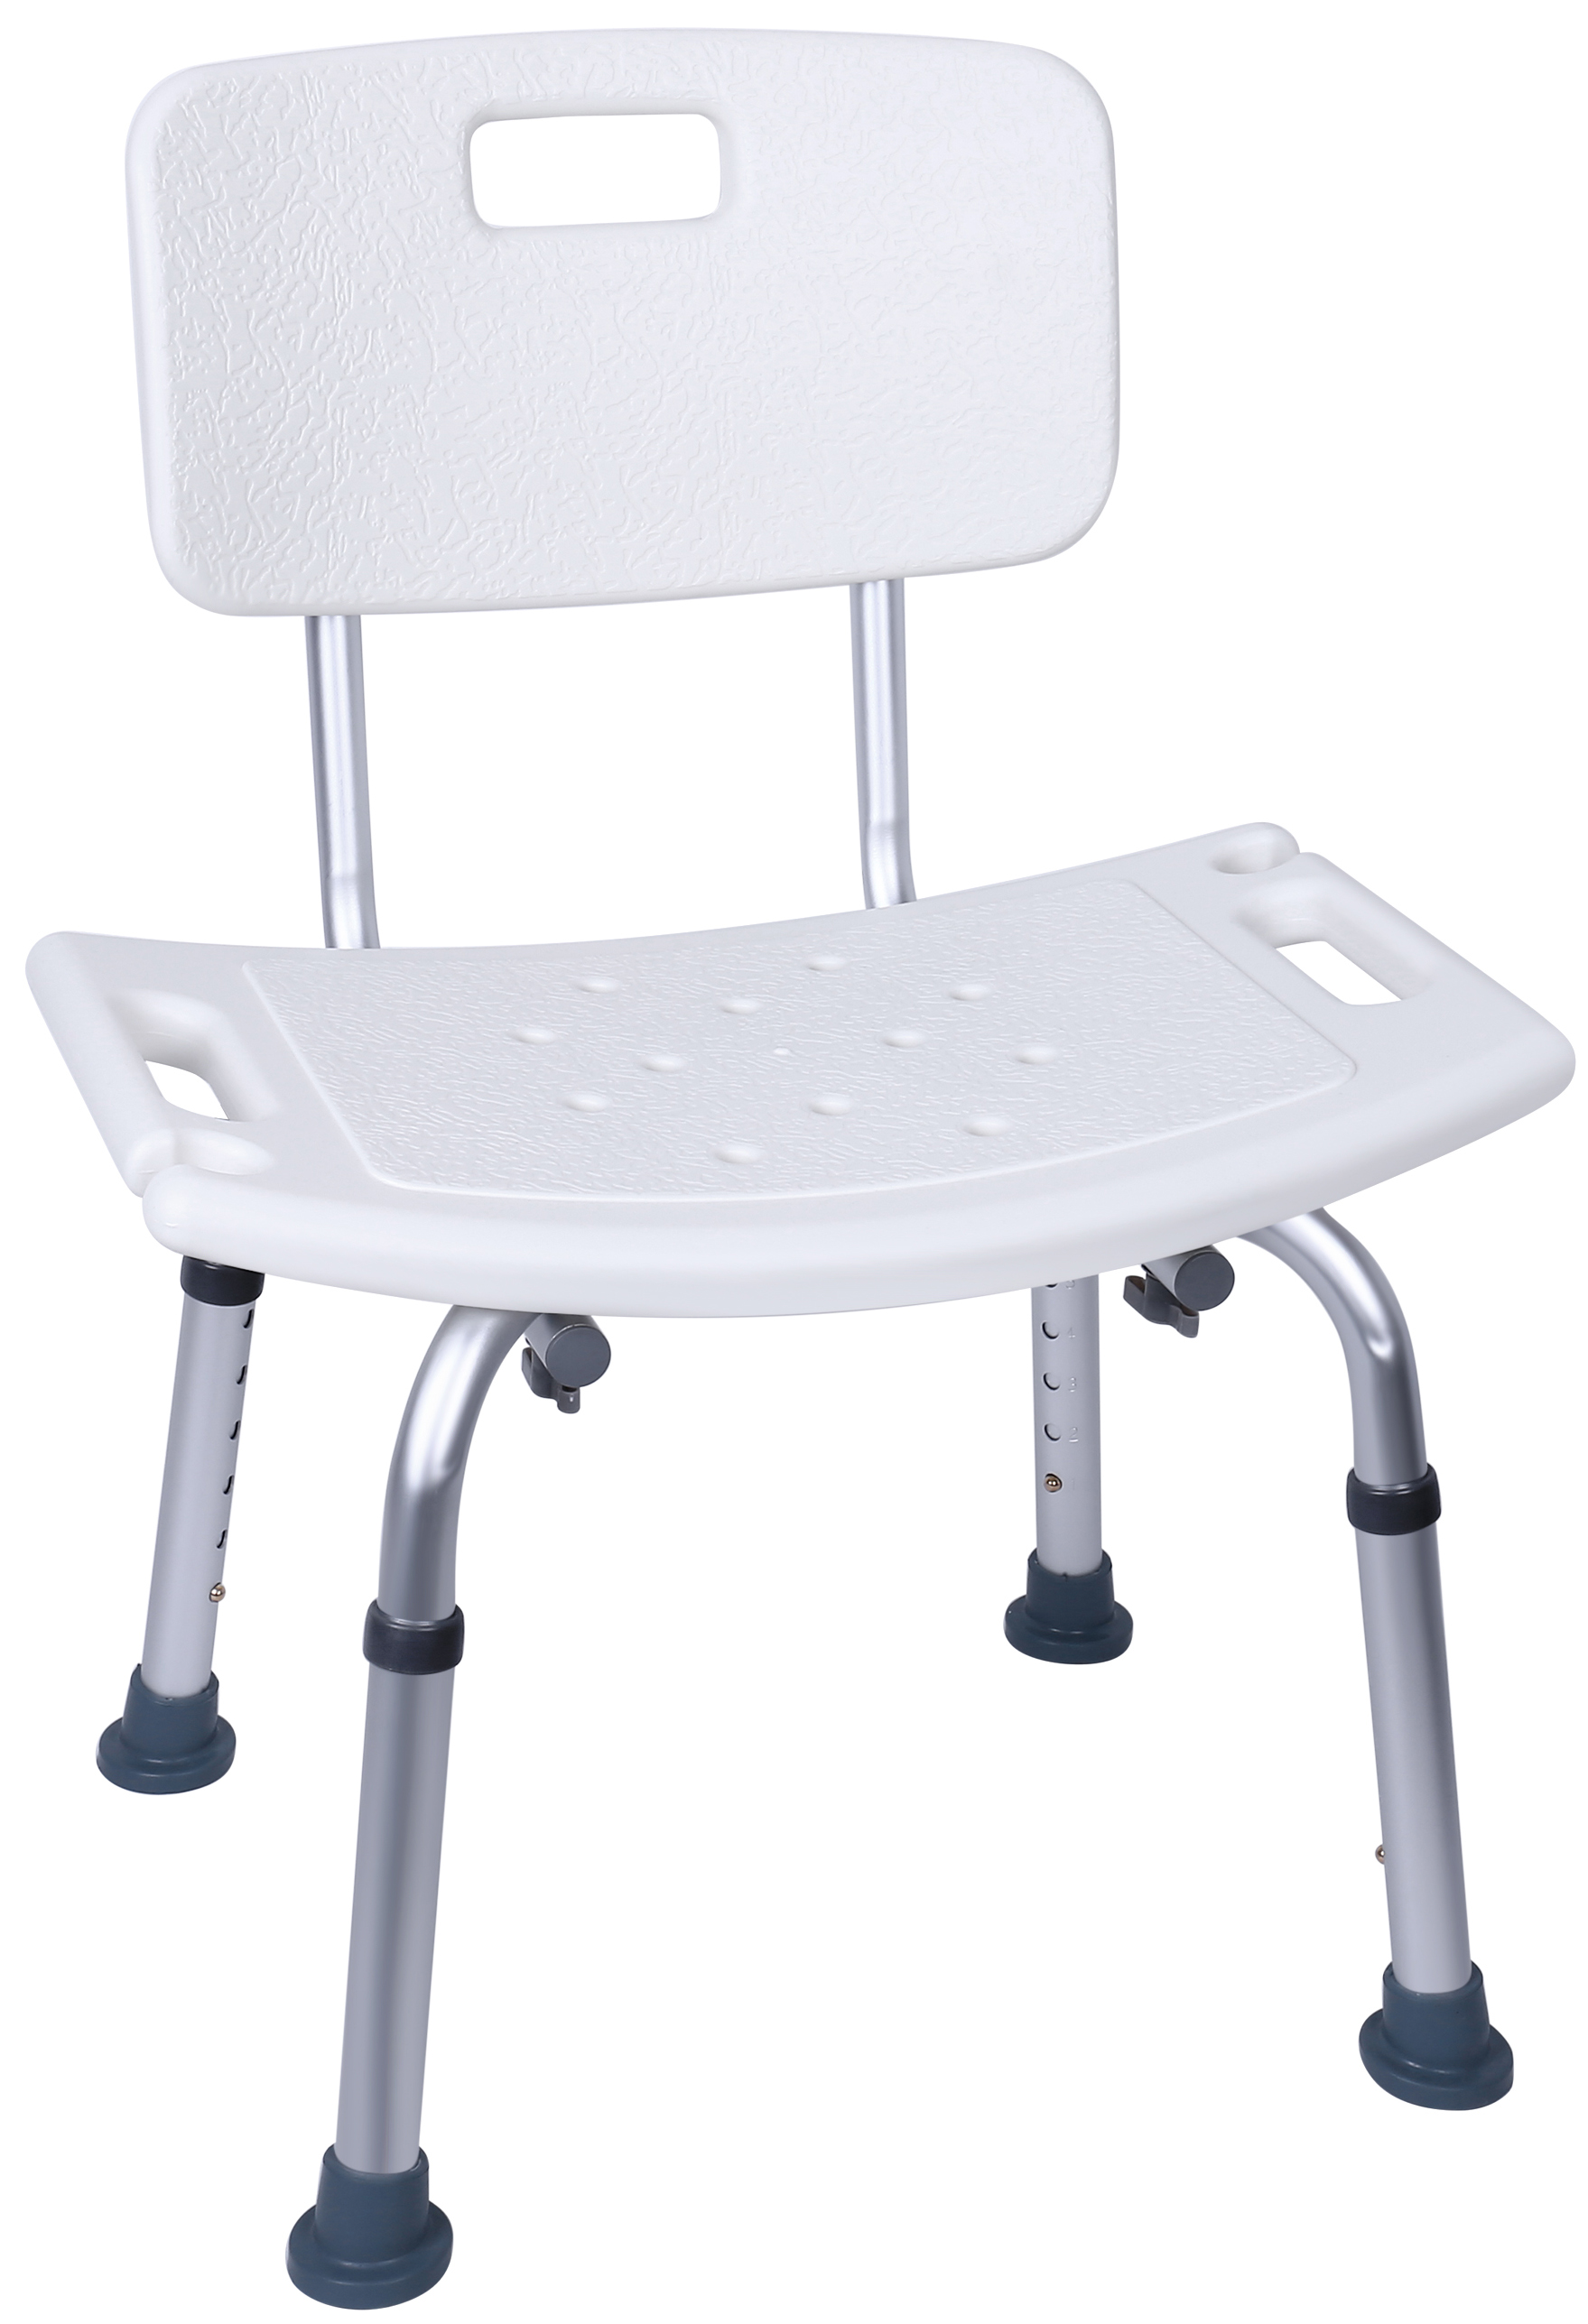 shower tub bench chair kitchen table and chairs ireland everyday essentials adjustable height bath with removable back walmart com